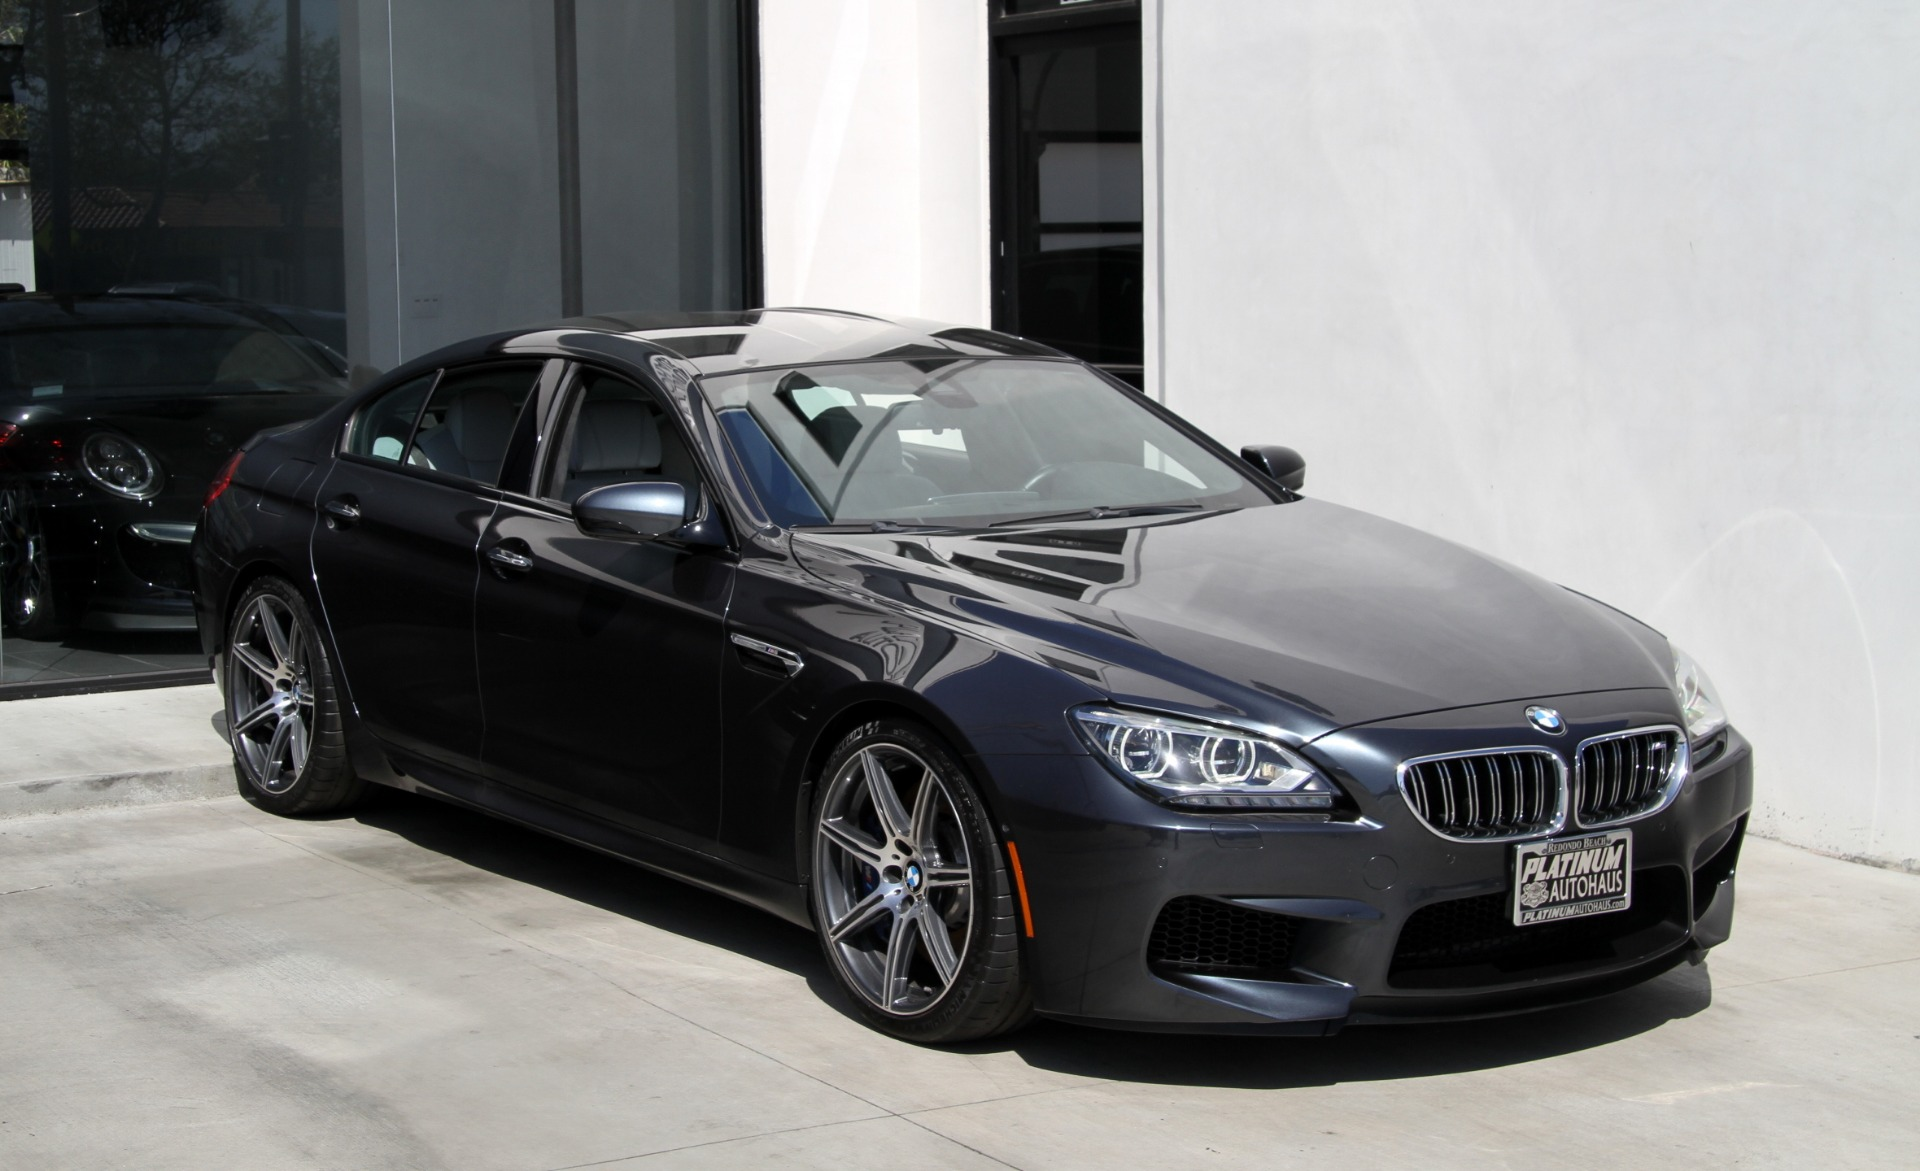 2015 bmw m6 gran coupe competition pkg stock 6056 for sale near redondo beach ca ca. Black Bedroom Furniture Sets. Home Design Ideas